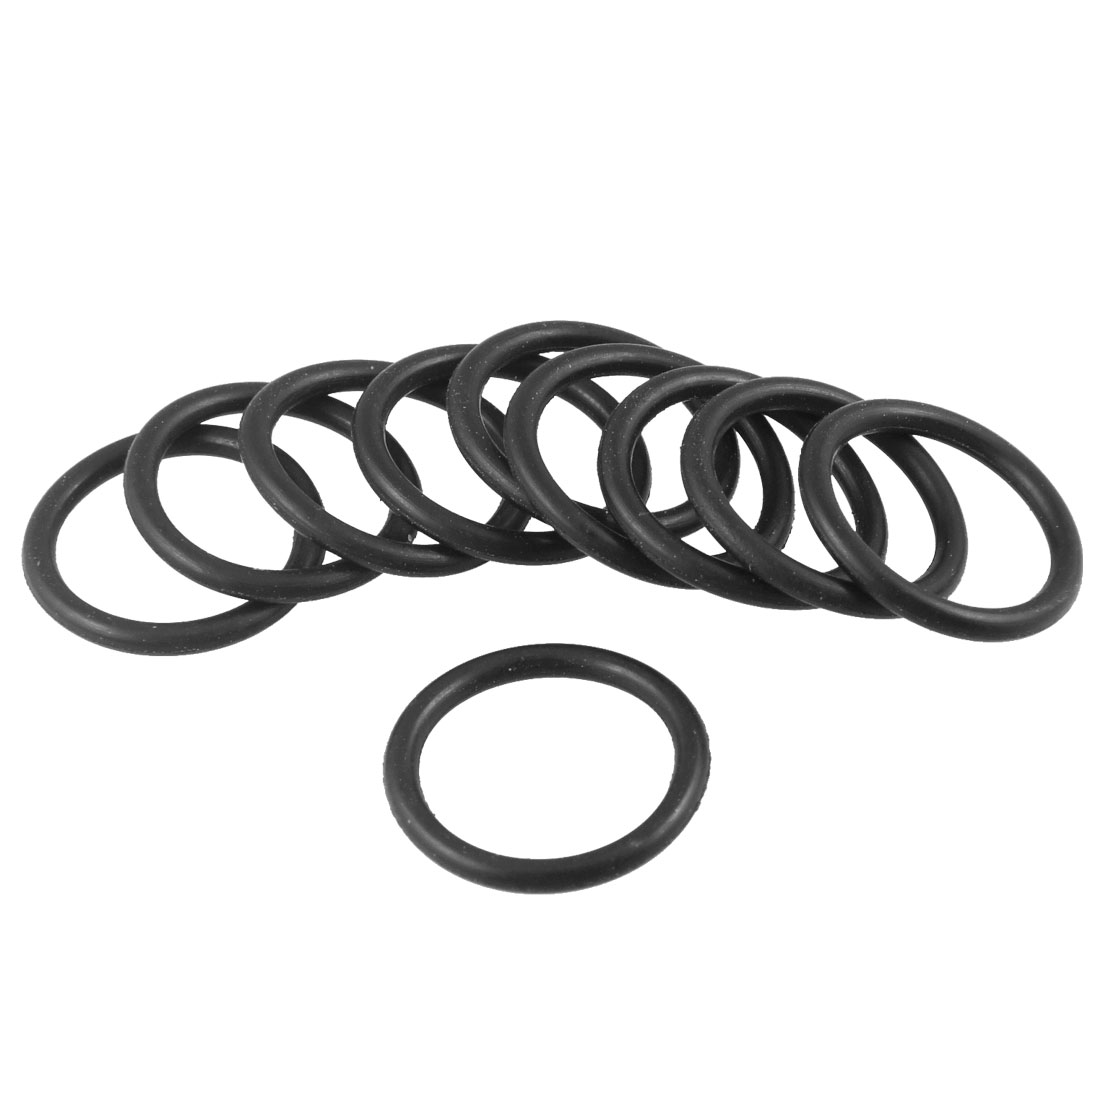 2.4mm 16.4mm  Cross section ID 11.6mm 2x seal NBR O-ring OD